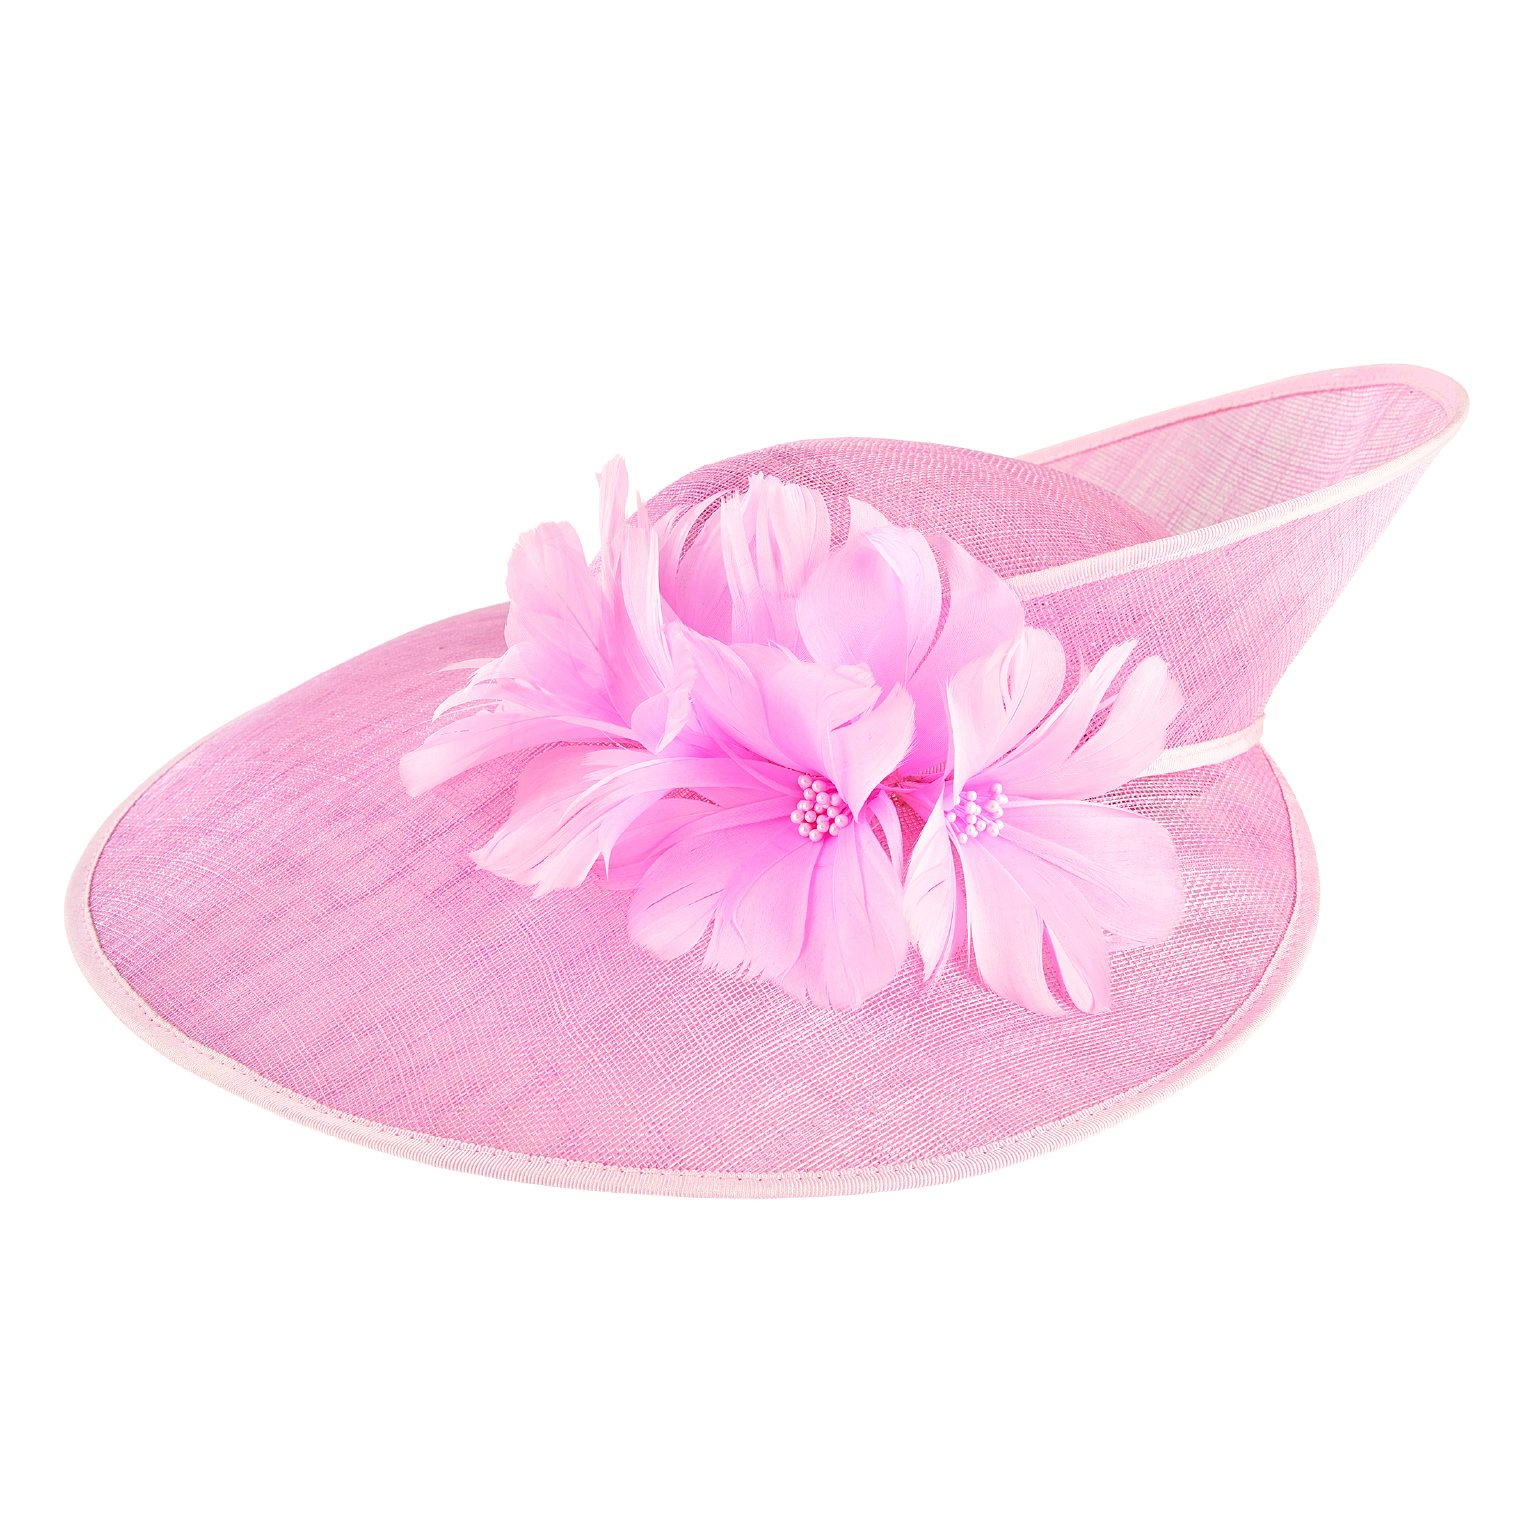 San Diego Hat Company Women's Twisted Brim Sinamay Fascinator Hat, Pink, OS by San Diego Hat Company